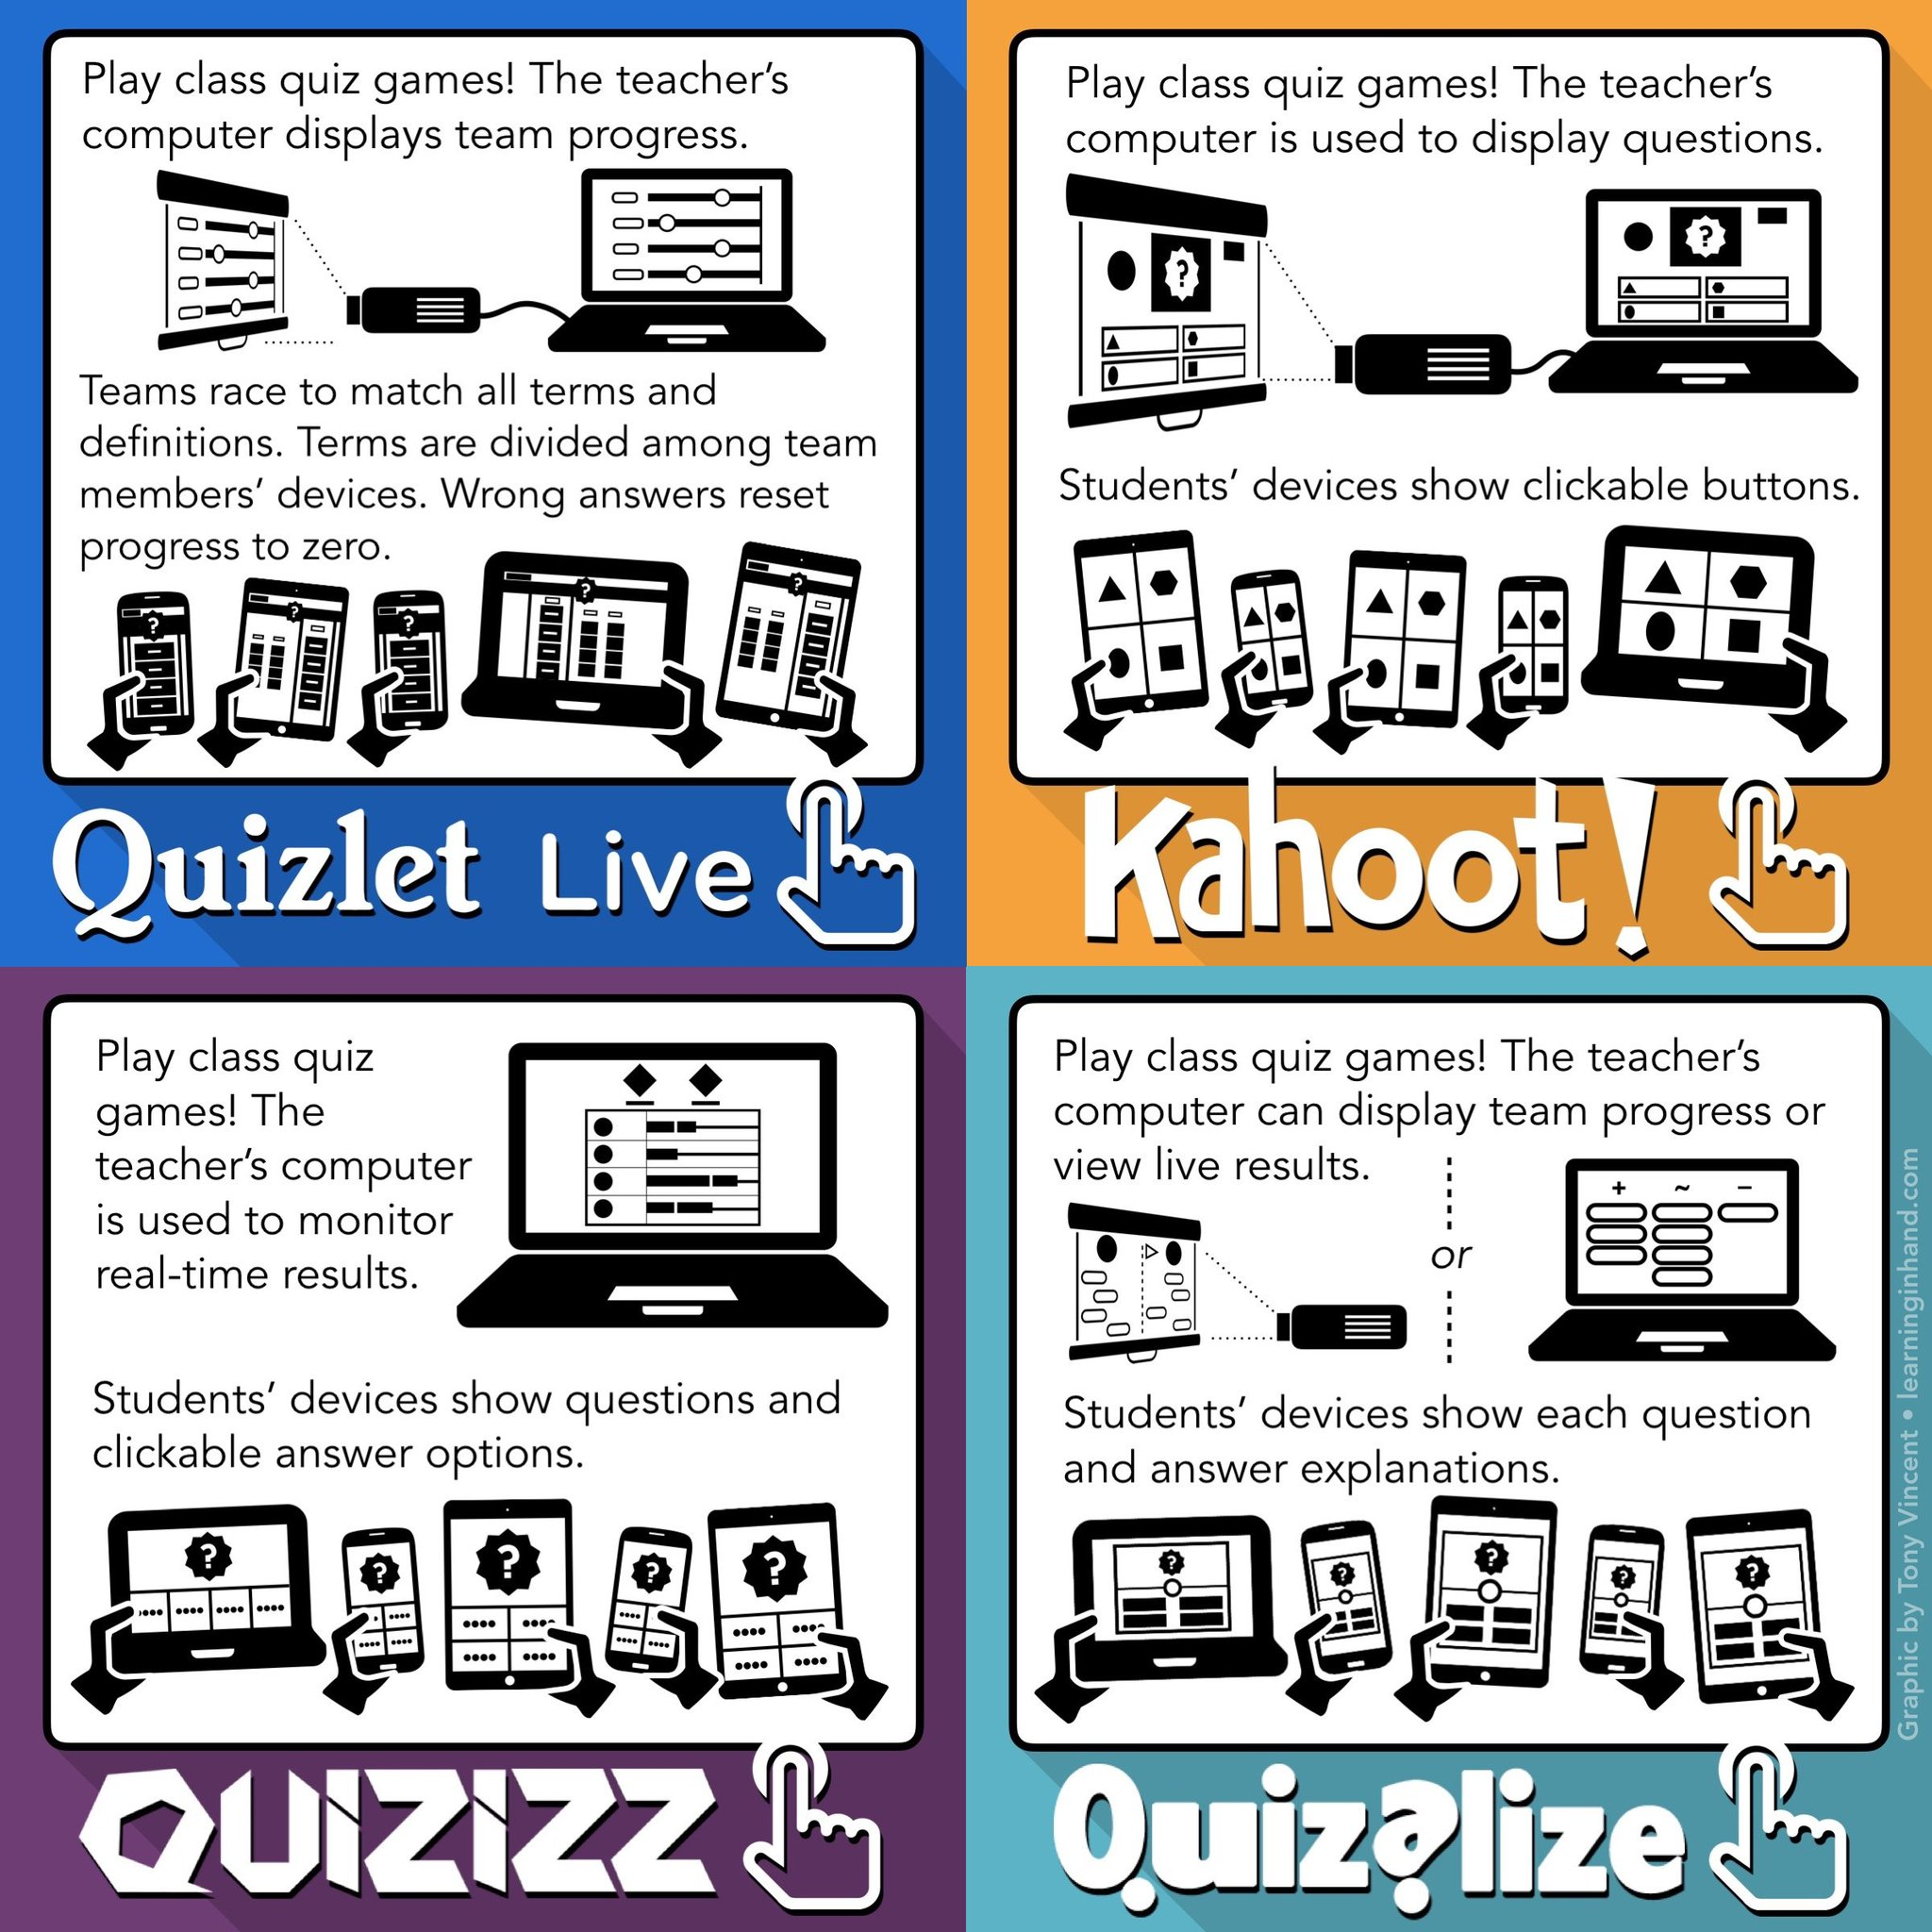 ⁉️ How the new Quizlet Live compares to other popular class quiz games... https://t.co/VBkFzTzwfs